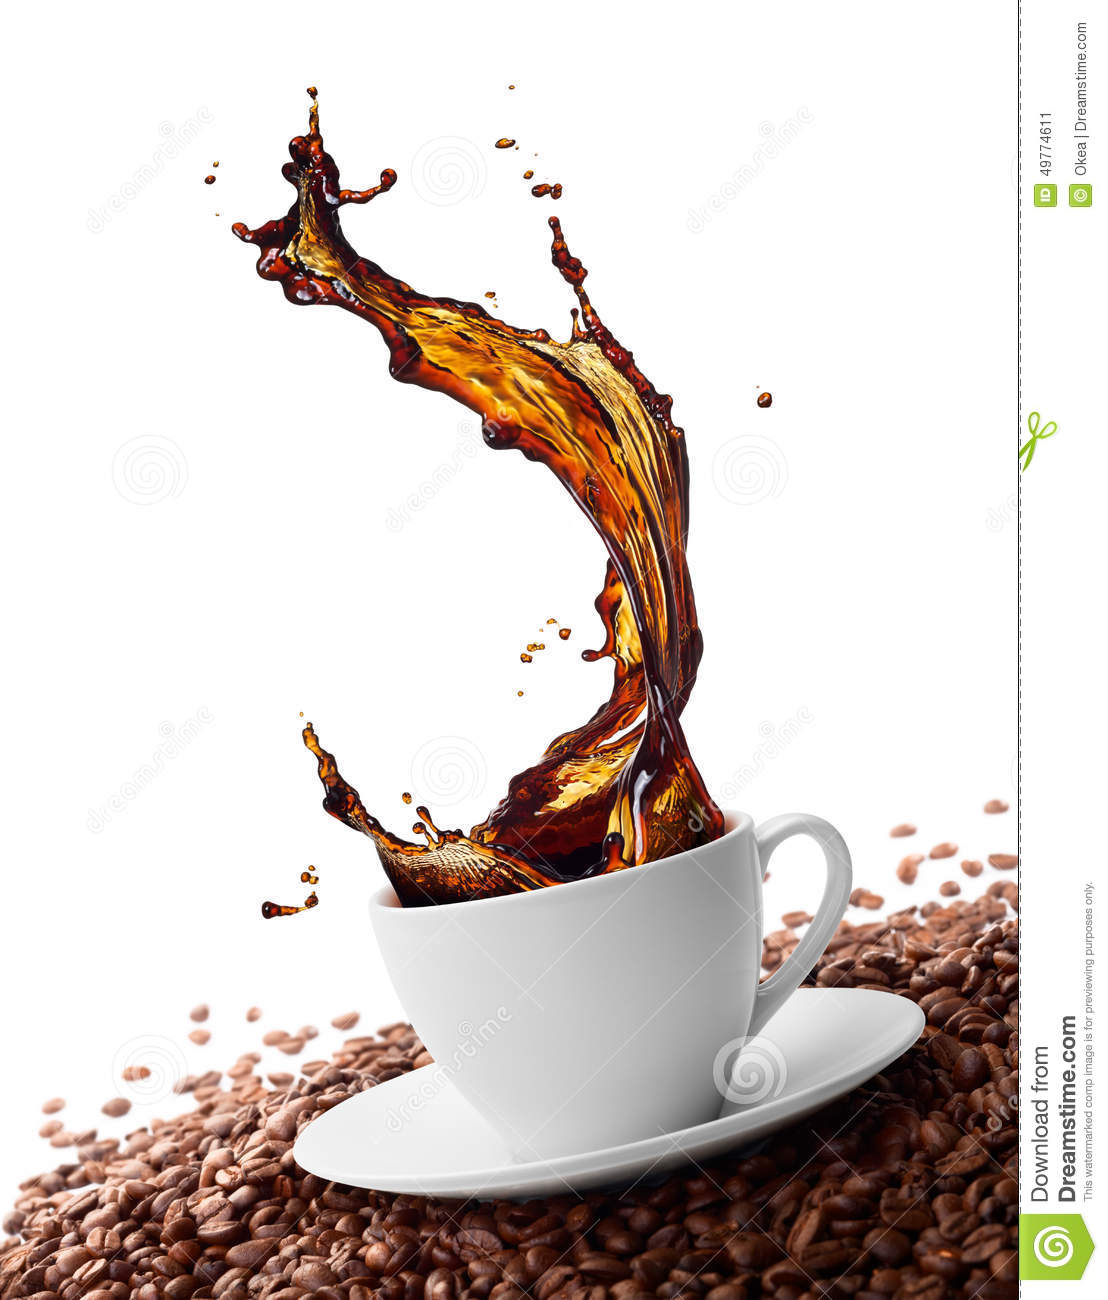 Cup of coffee with splash surrounded by coffee beans.